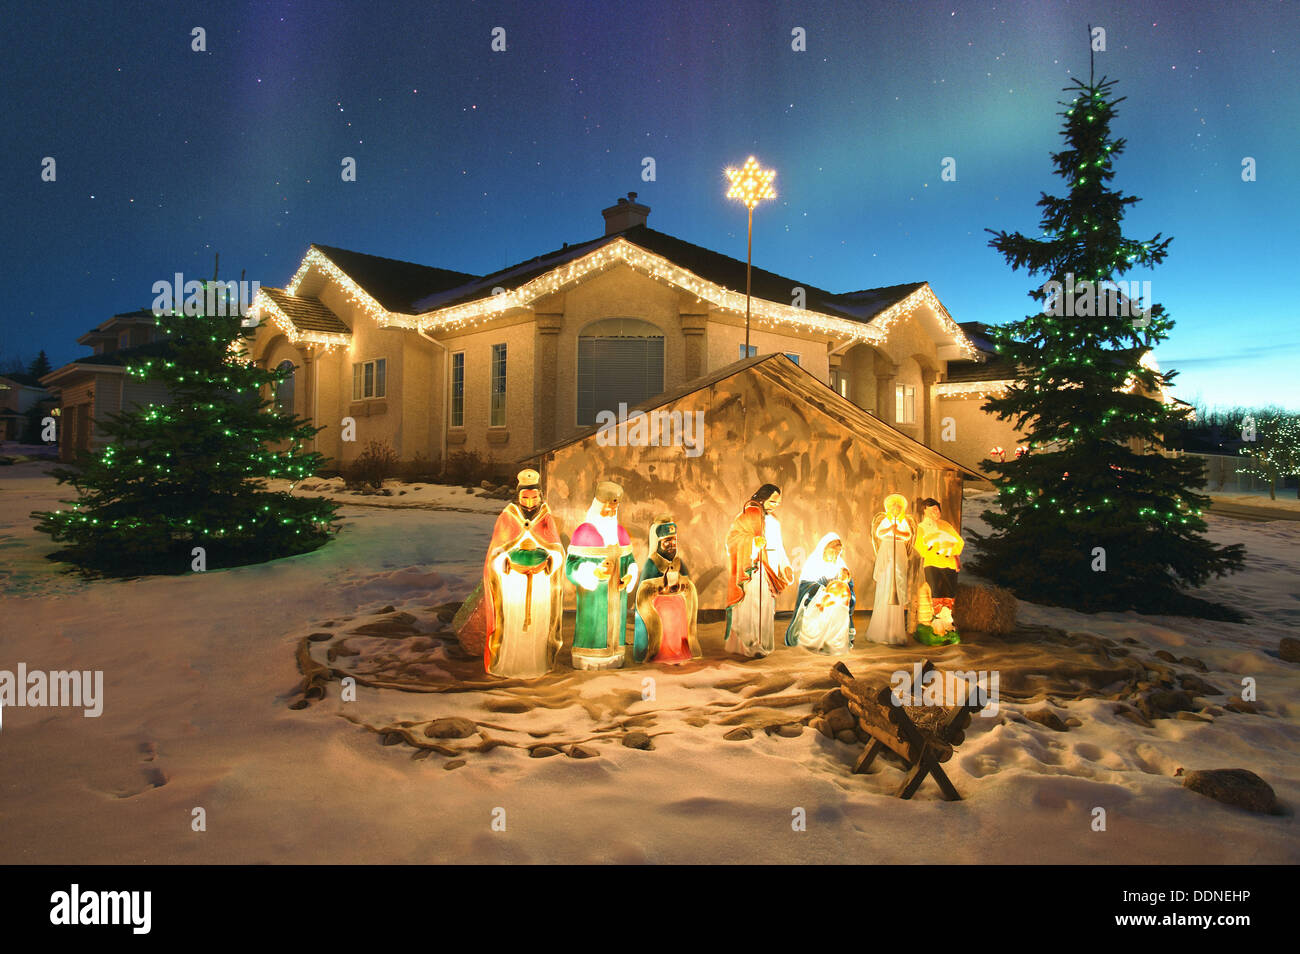 Outdoor Christmas Nativity Scene With Northern Lights